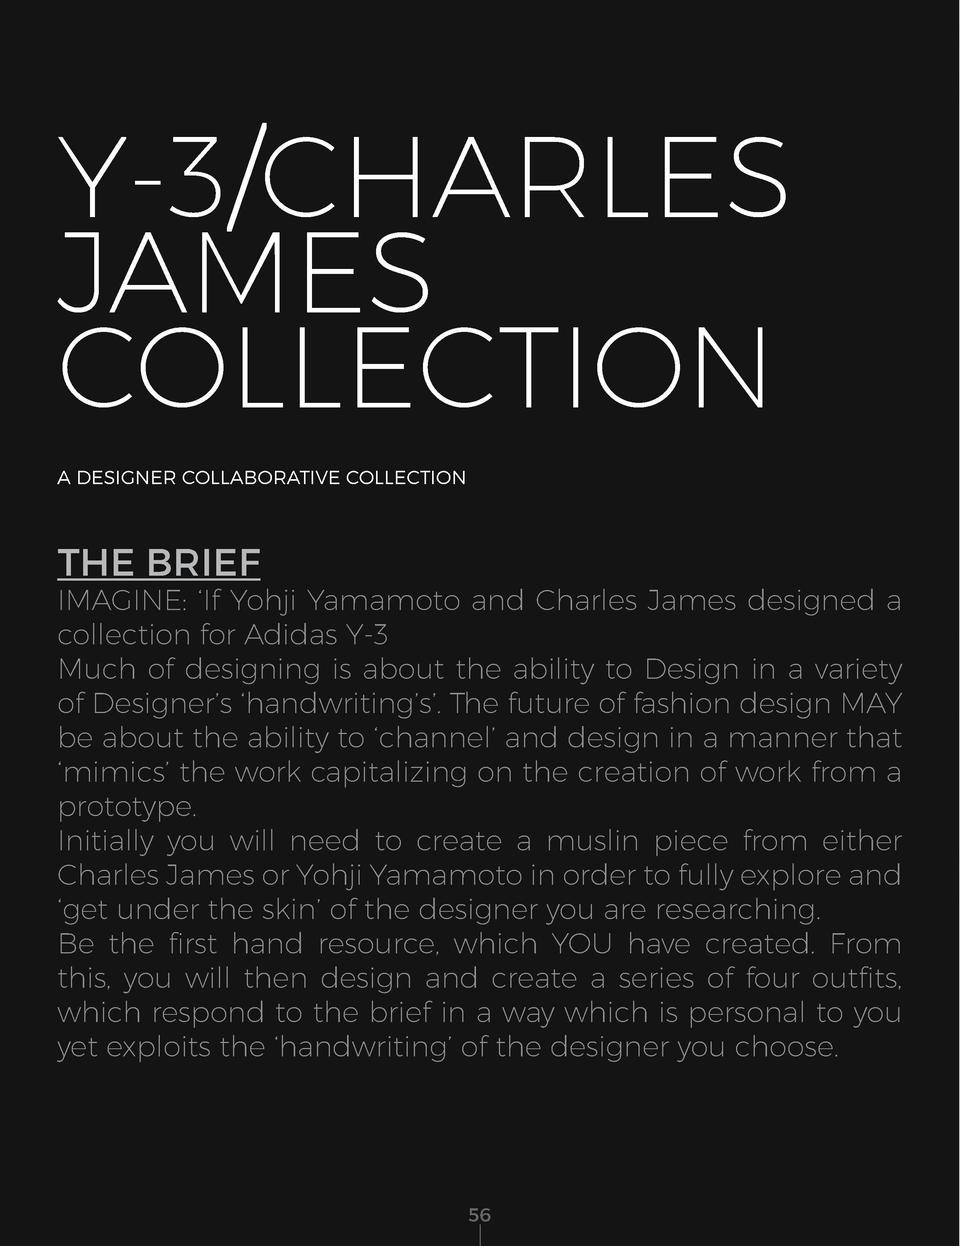 Y-3 CHARLES JAMES COLLECTION A DESIGNER COLLABORATIVE COLLECTION  THE BRIEF  THE BEST OF BOTH WORLDS  IMAGINE     If Yohji...